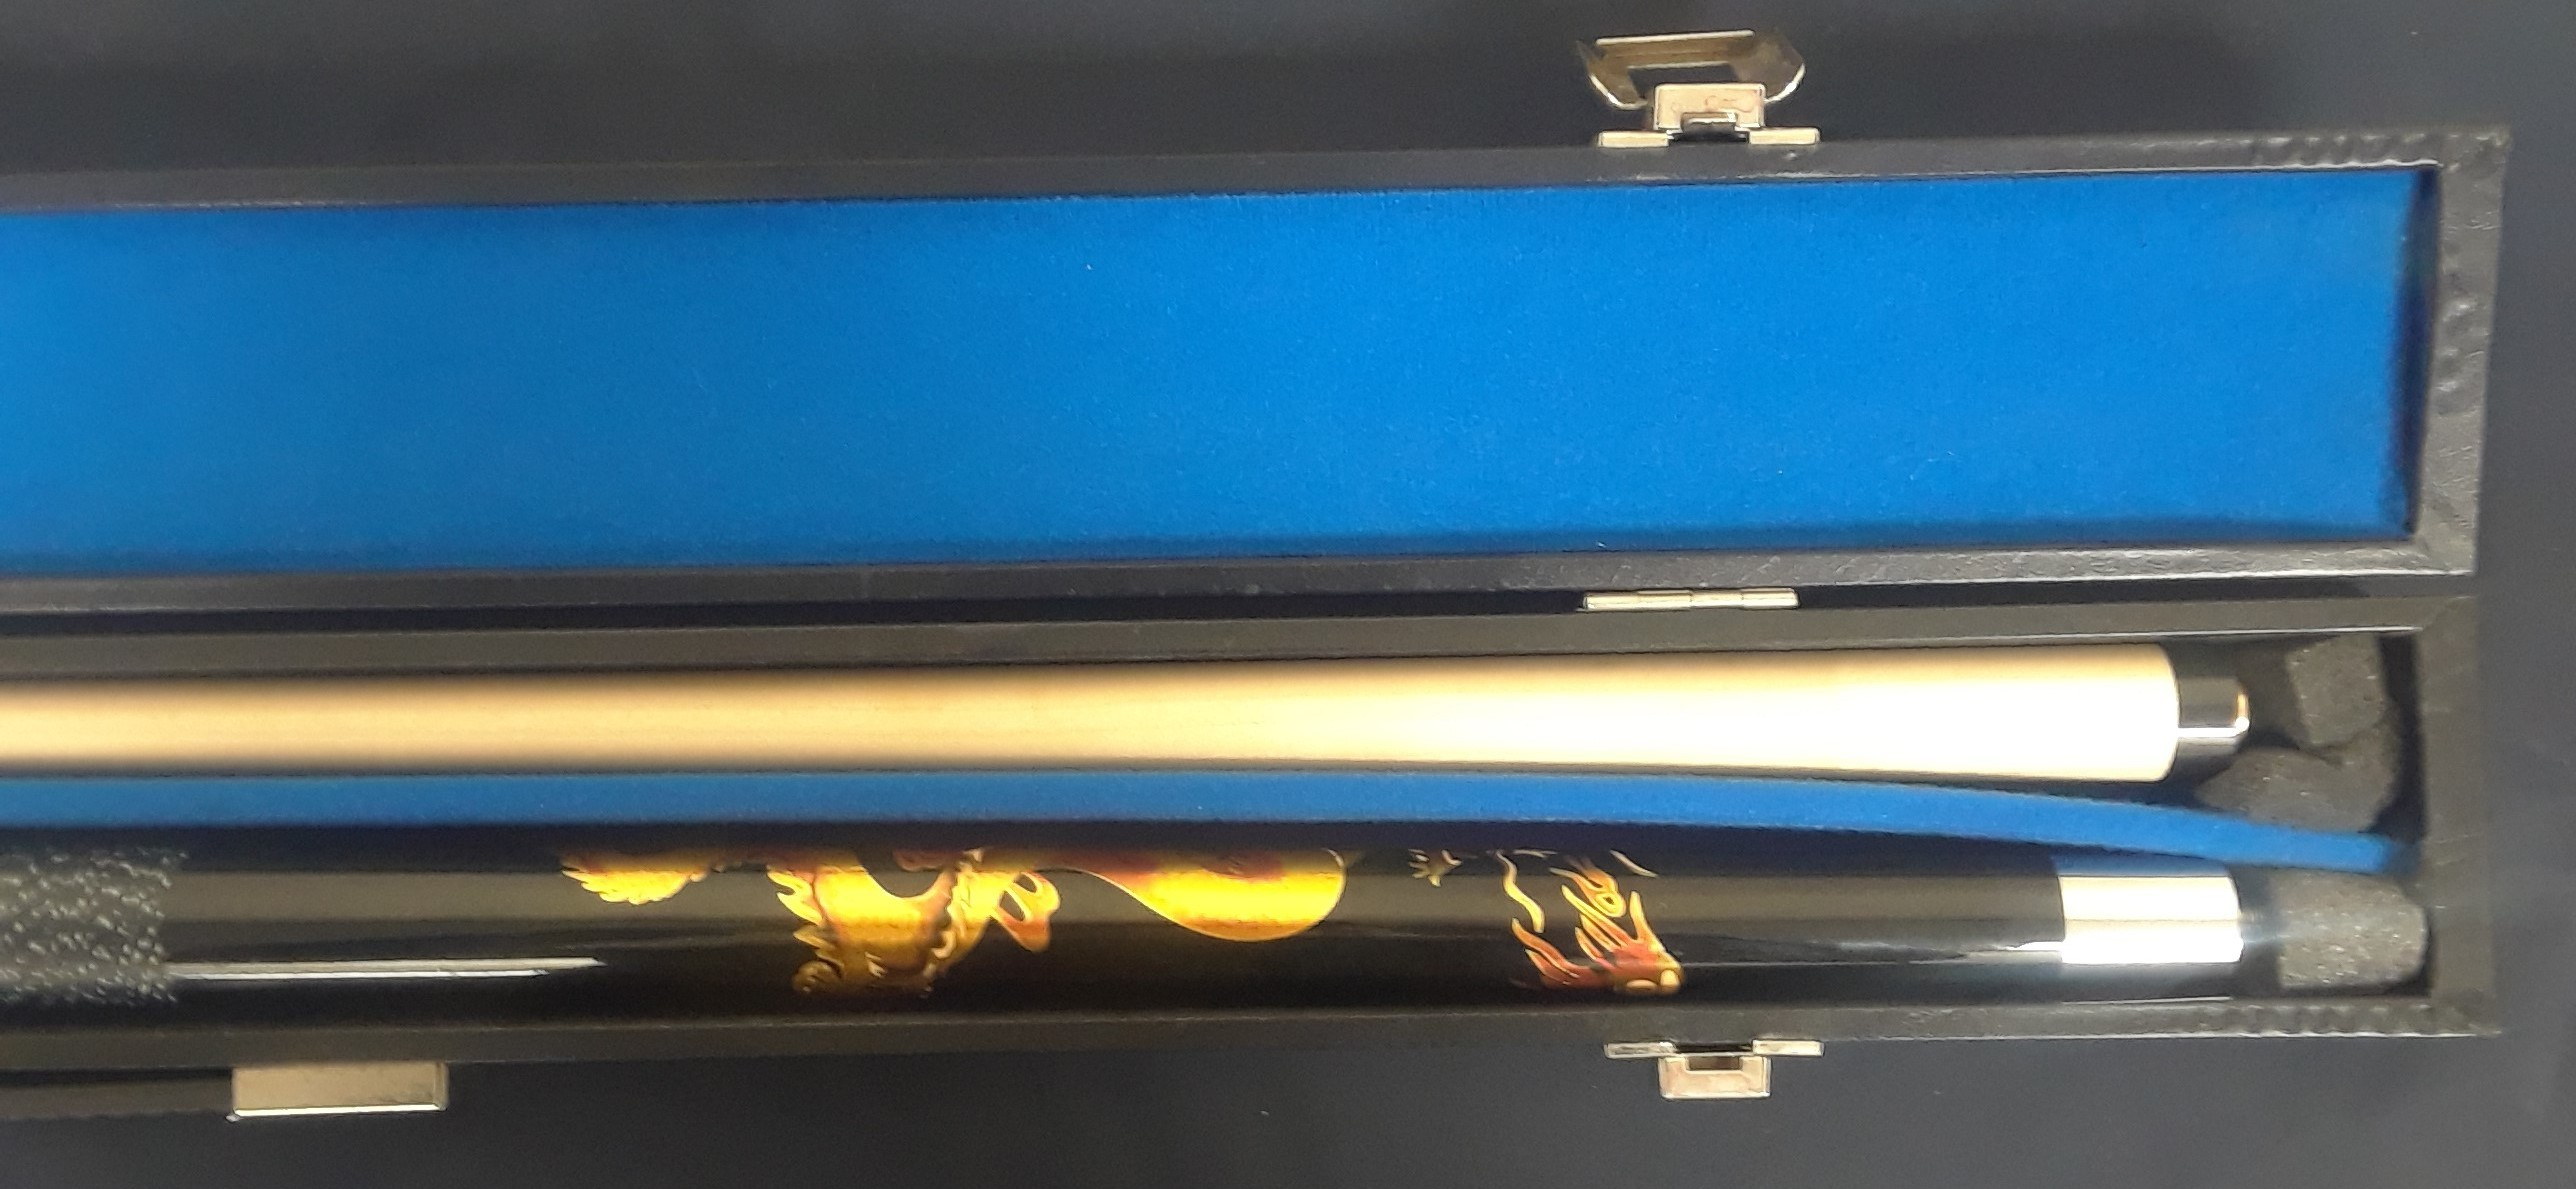 PLAYER - K1609 - POOL CUE SPORTING EQUIPMENT